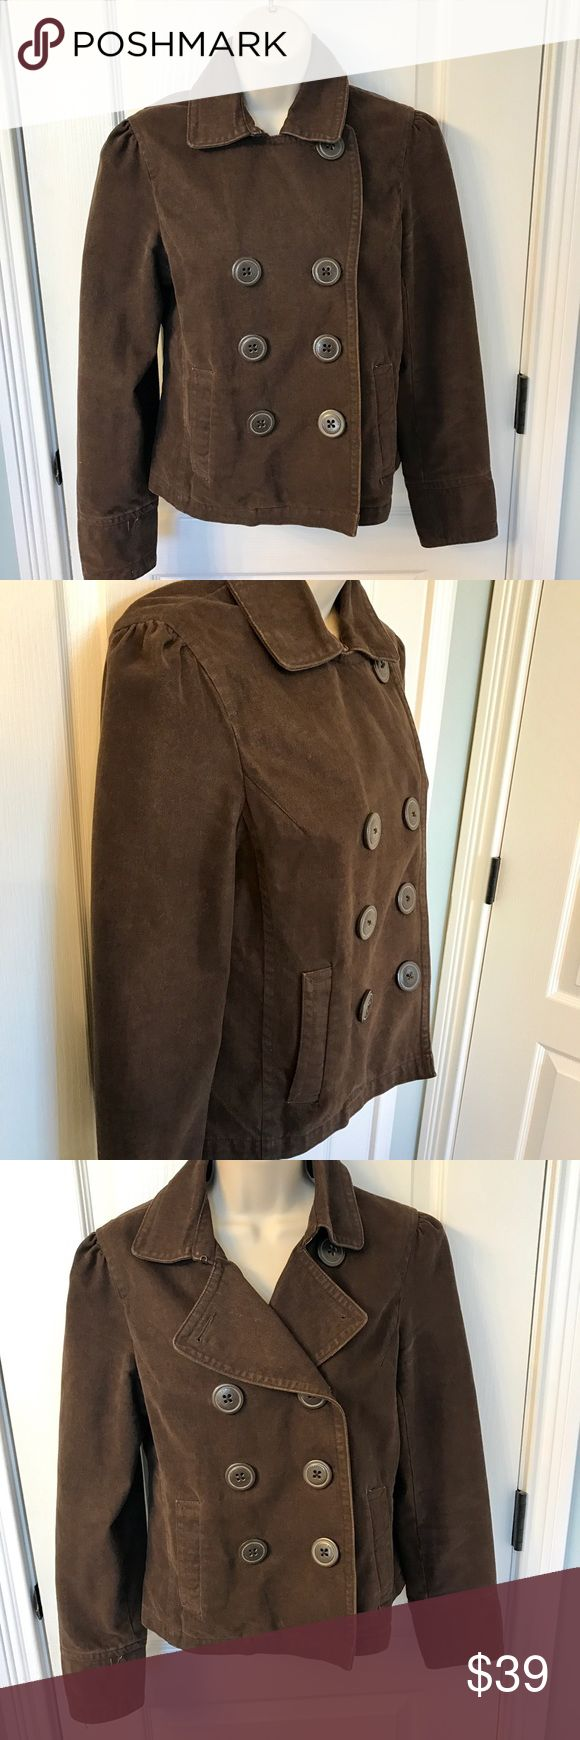 EUC American Eagle Outfitters Brown Peacoat! ❤ EUC American Eagle Outfitters Brown Peacoat! ❤.  This jacket has hardly been worn! 100% Cotton and very versatile and trendy!  😀 American Eagle Outfitters Jackets & Coats